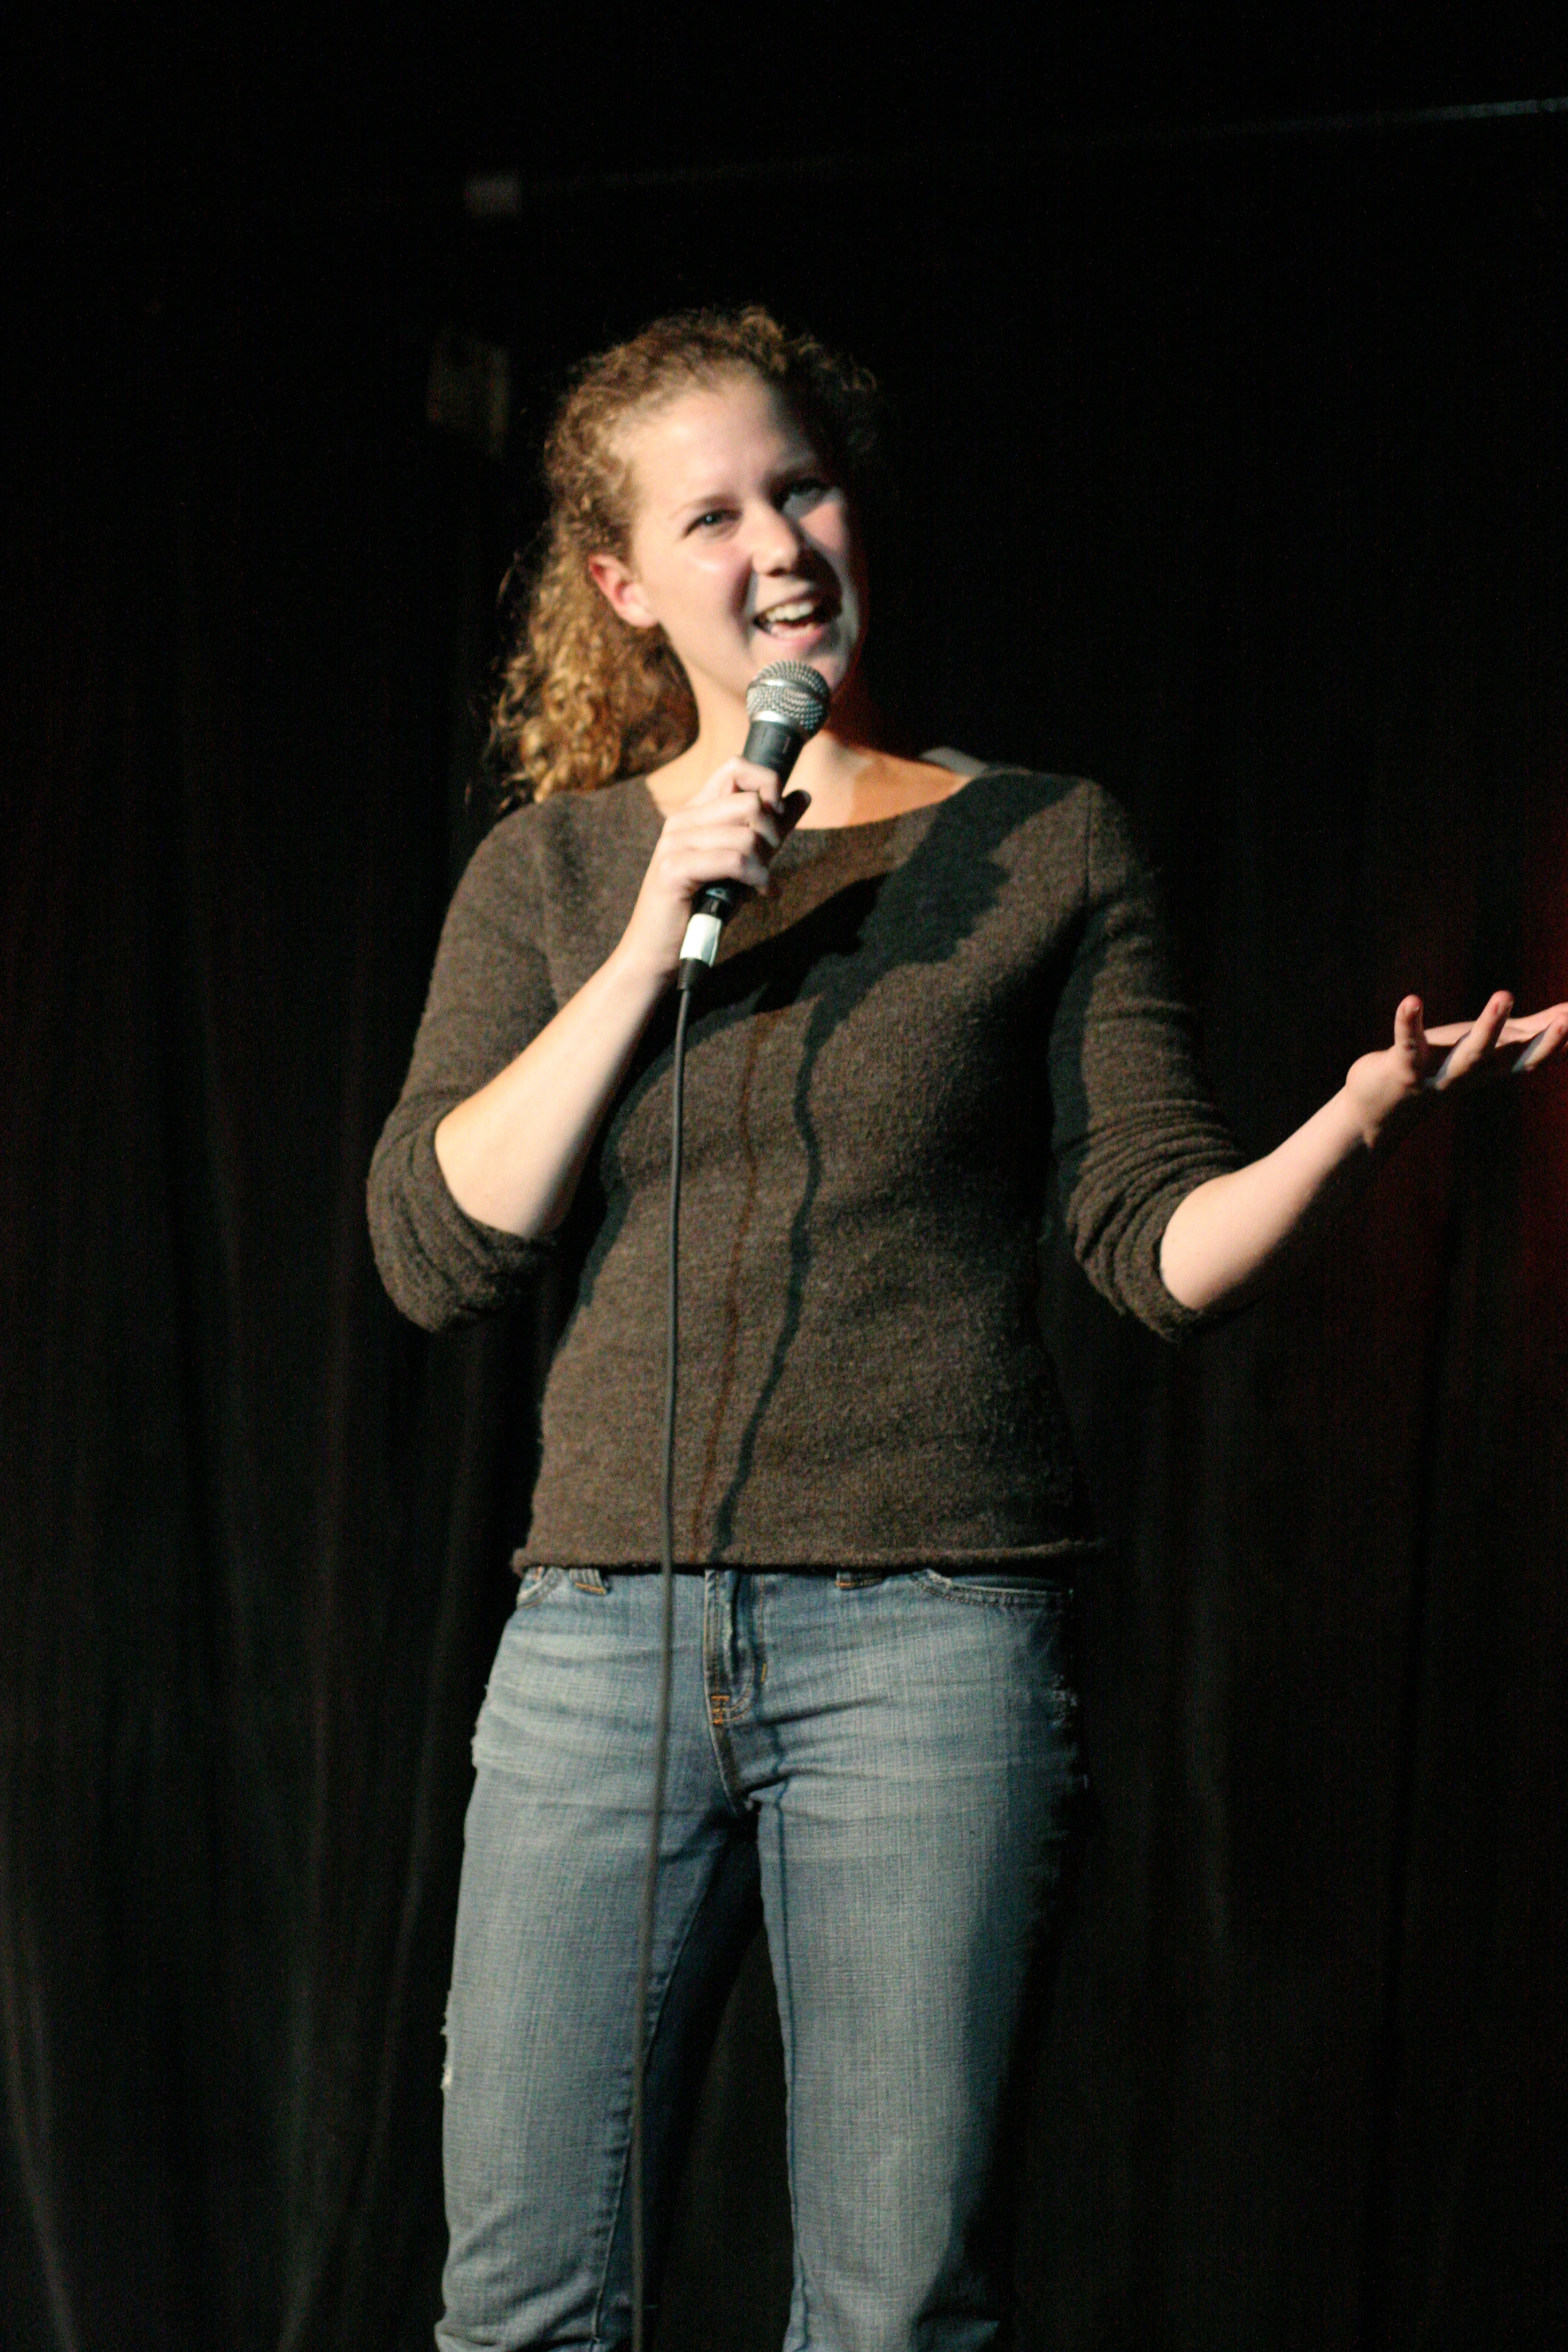 File:Amy Schumer.jpg - Wikimedia Commons